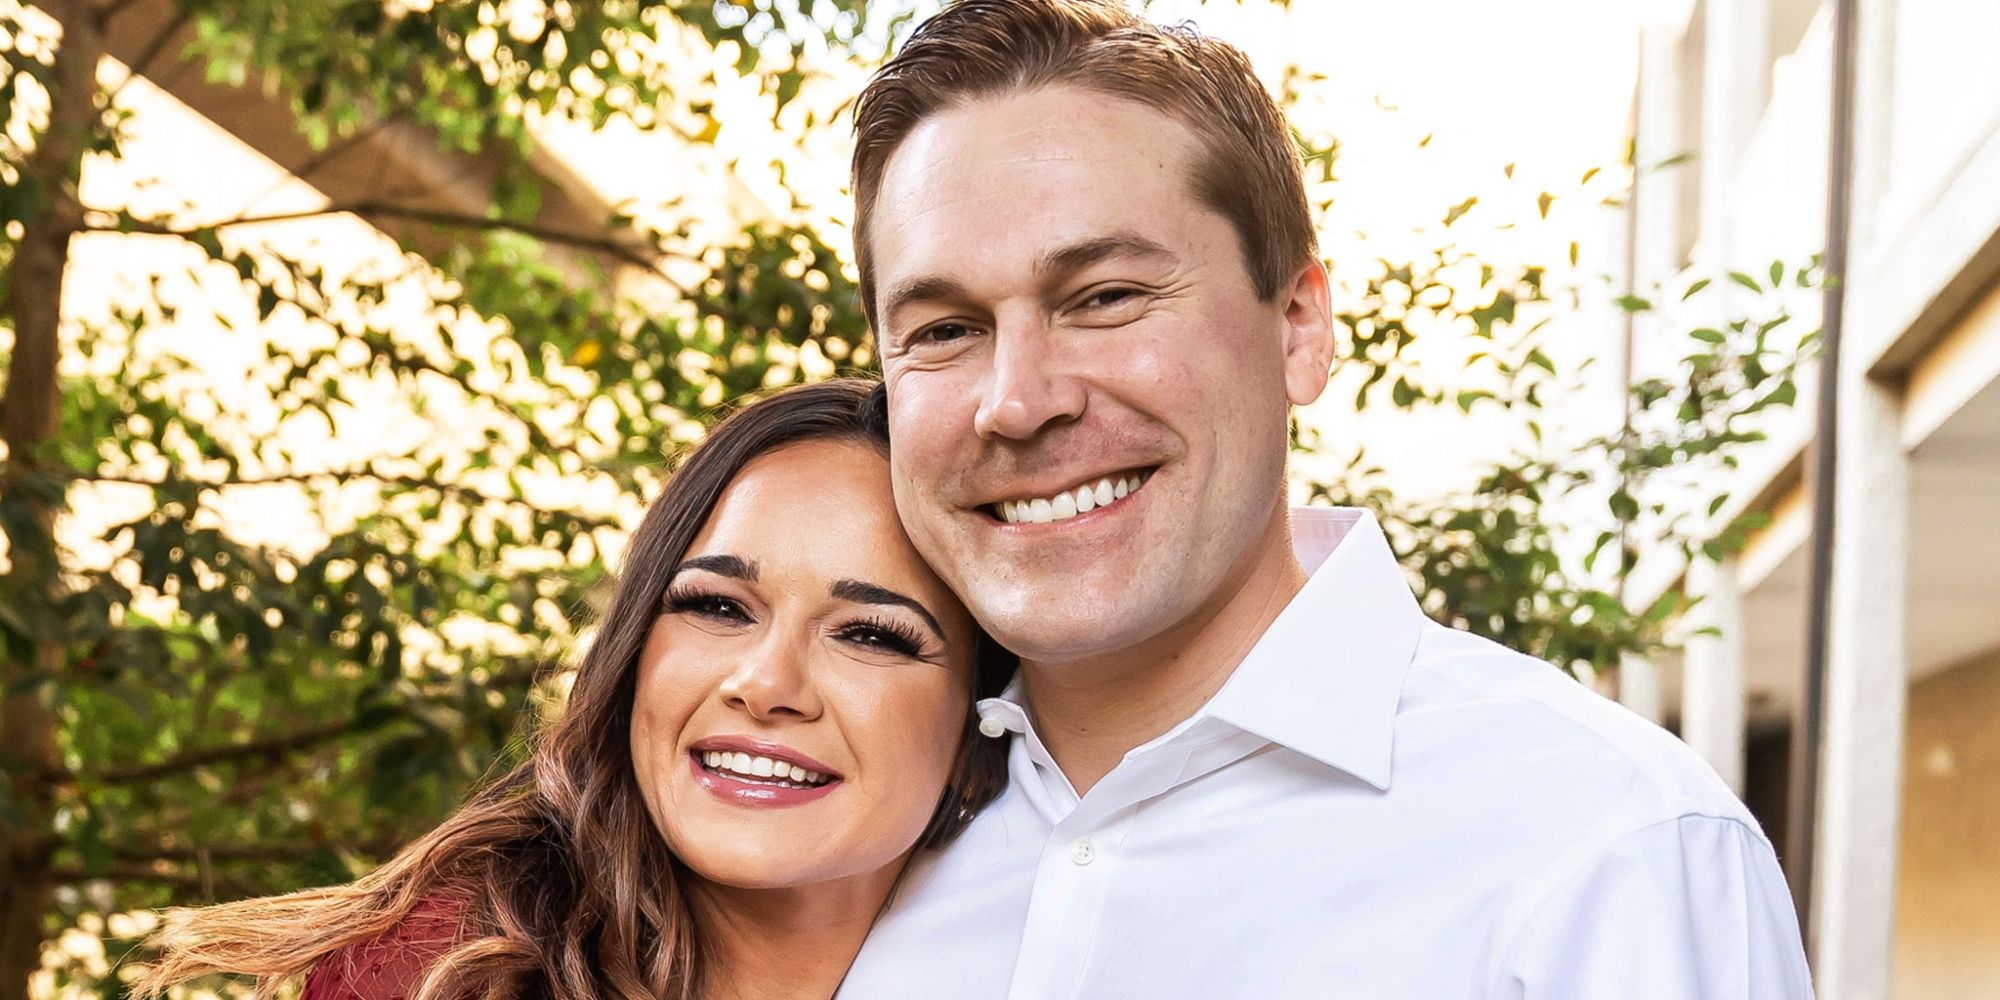 Married At First Sight: Virginia Coombs' Net Worth & How She Makes Her Money